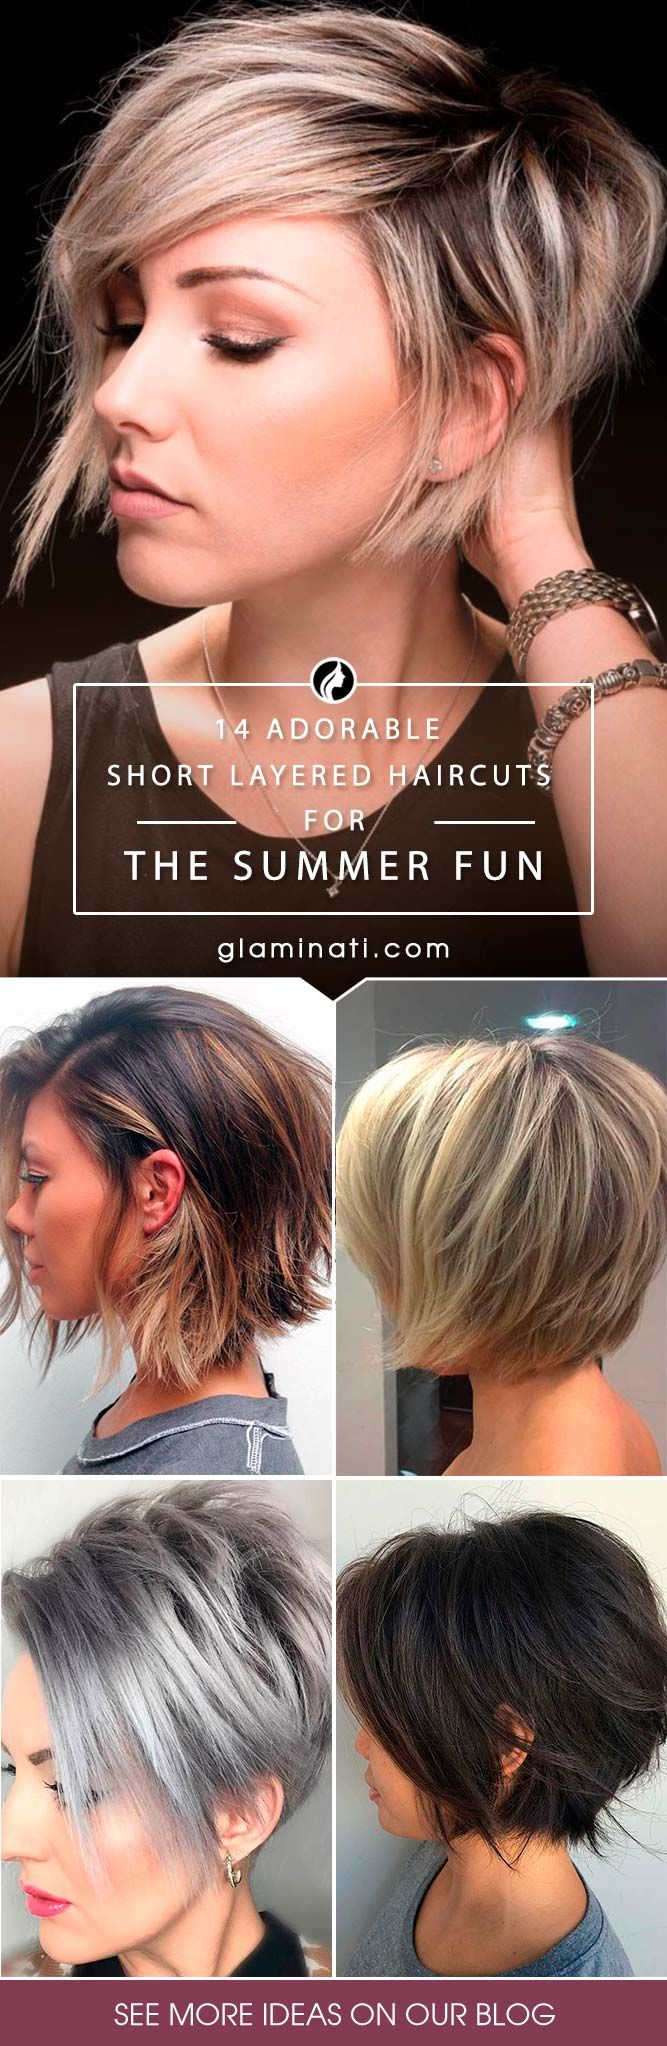 Short layered haircuts are totally in at the moment. With summer just months away, you might be thinking of trading in your longer locks for a simpler style to survive those torrid summer months.